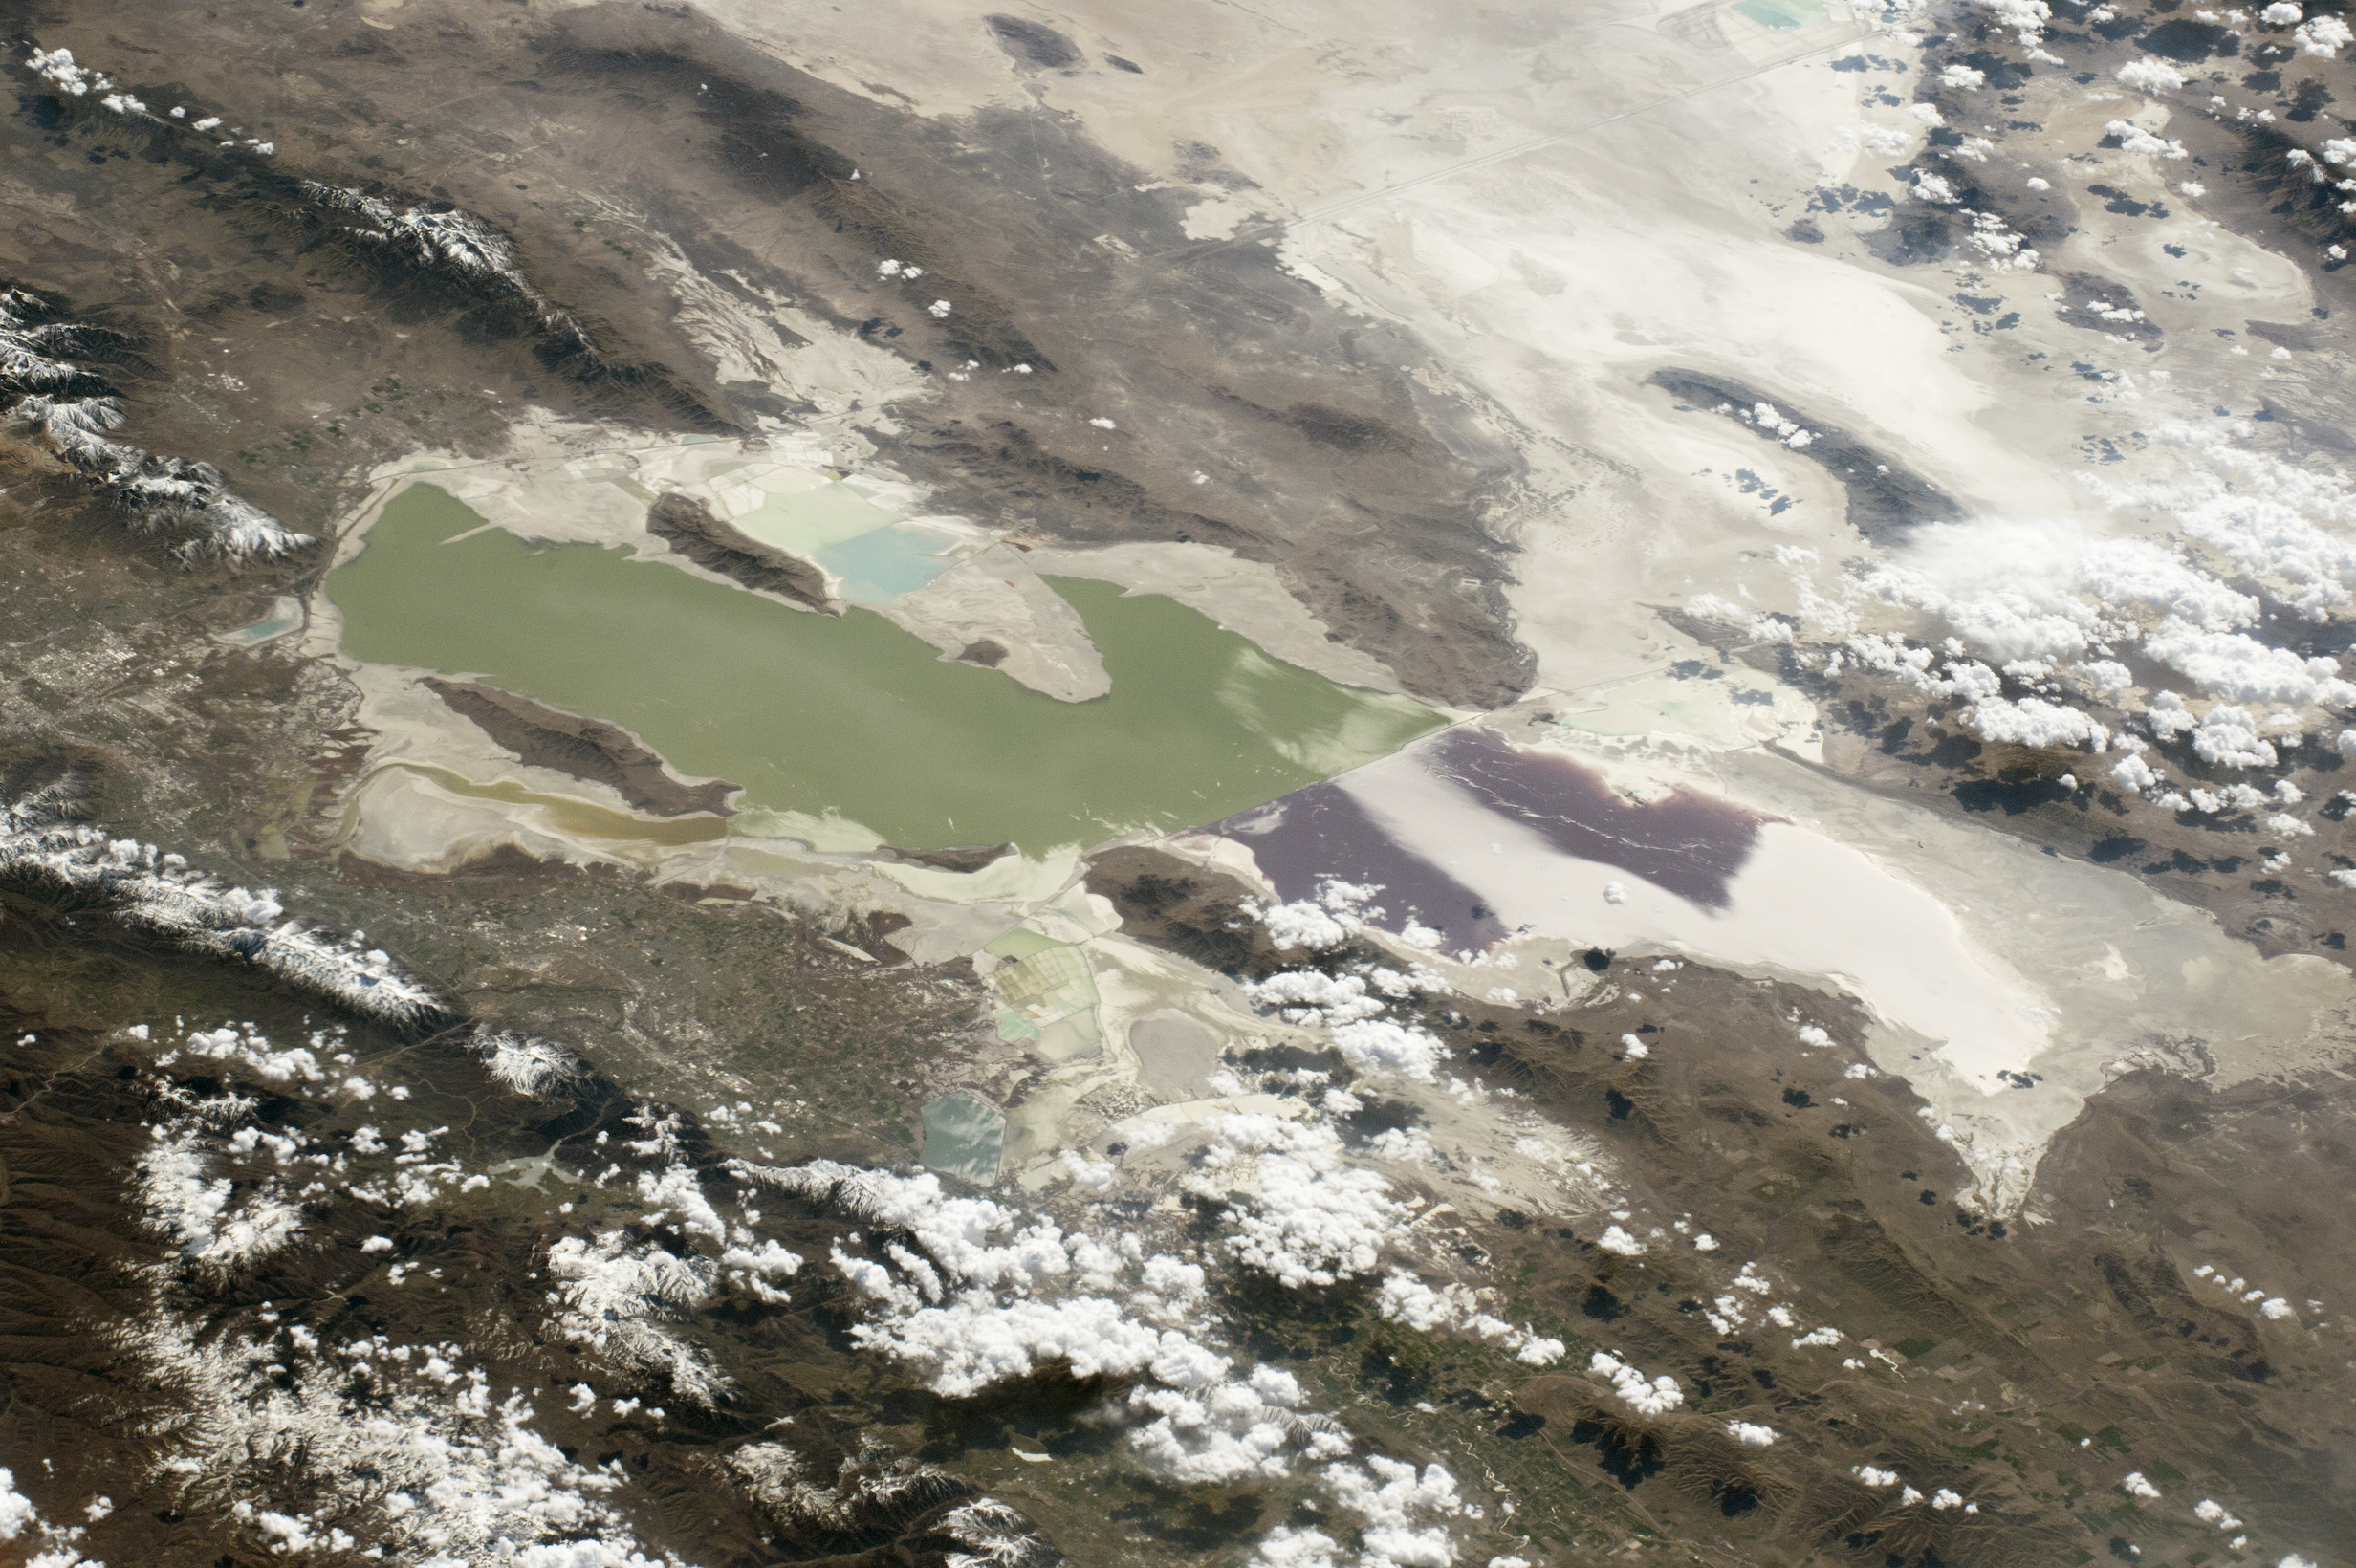 Today's Image of the Day comes from the NASA Earth Observatory and features a look at the Great Salt Lake in northern Utah.